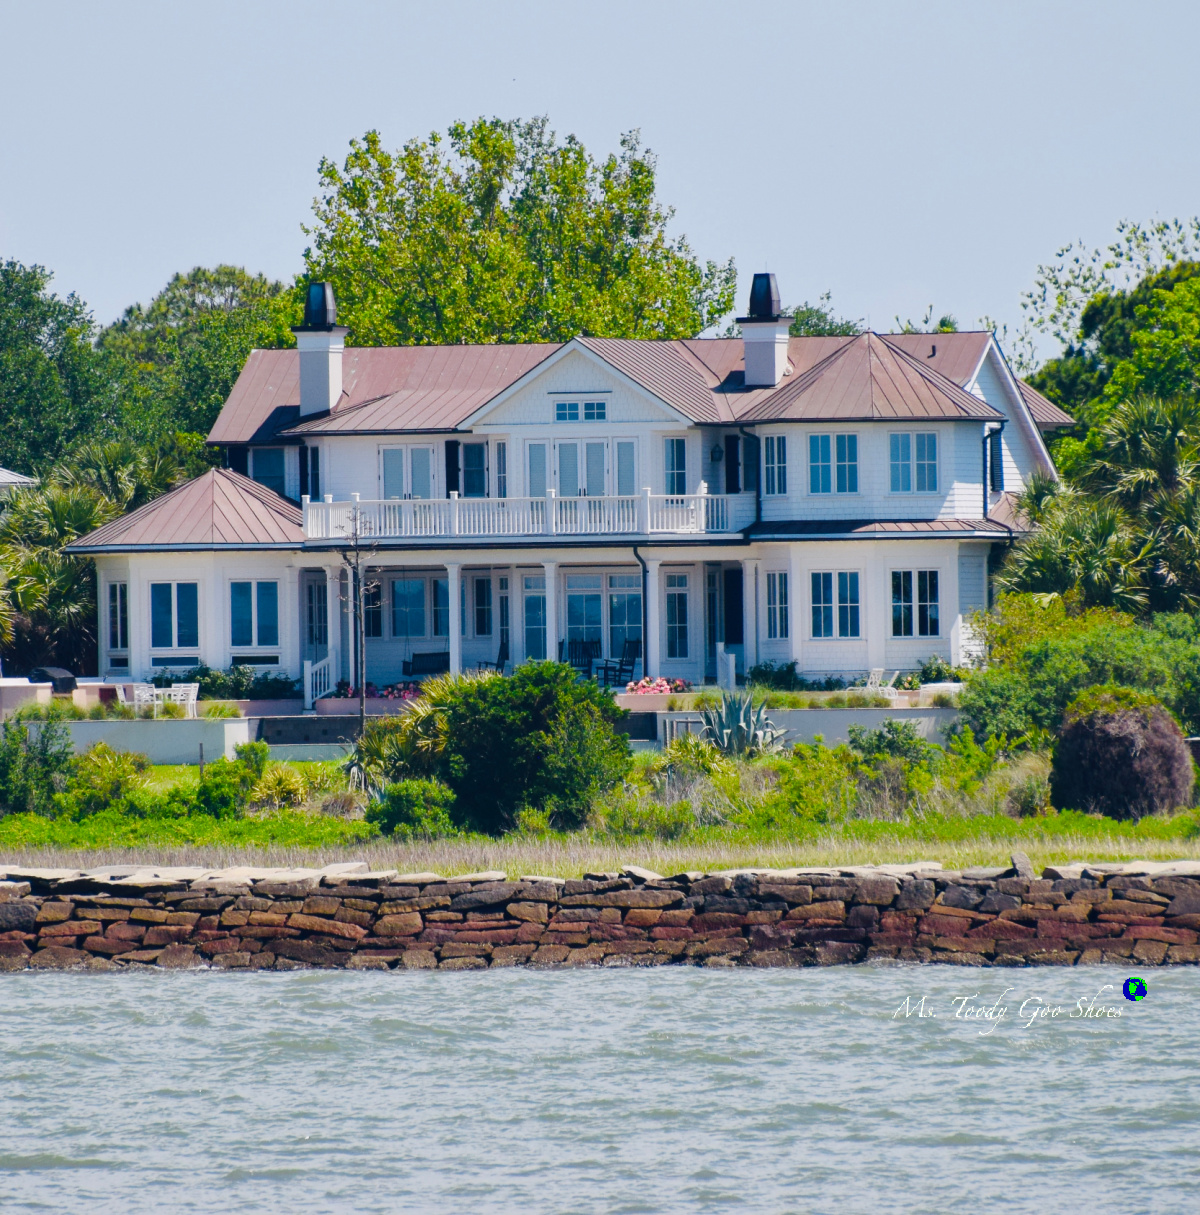 Waterfront Home on Sullivan's Island, SC | Ms. Toody Goo Shoes